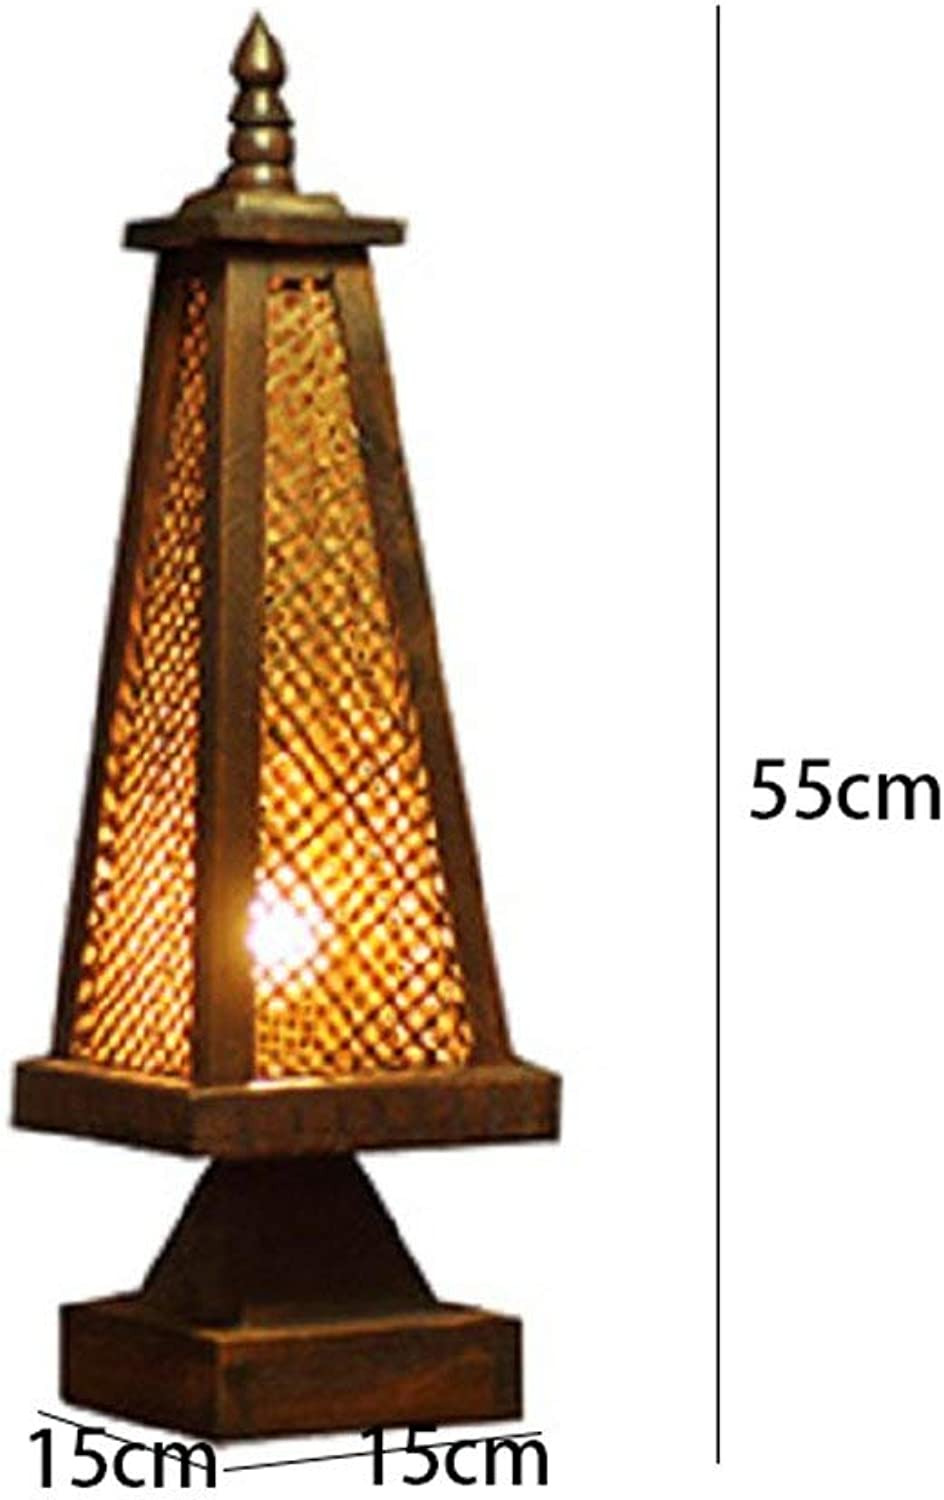 WHKFD Thailand Carved Wooden Vintage Lights of Thailand Southeast Asian Hotel Club Lights, Bedside Table Manual, H52  W15Cm